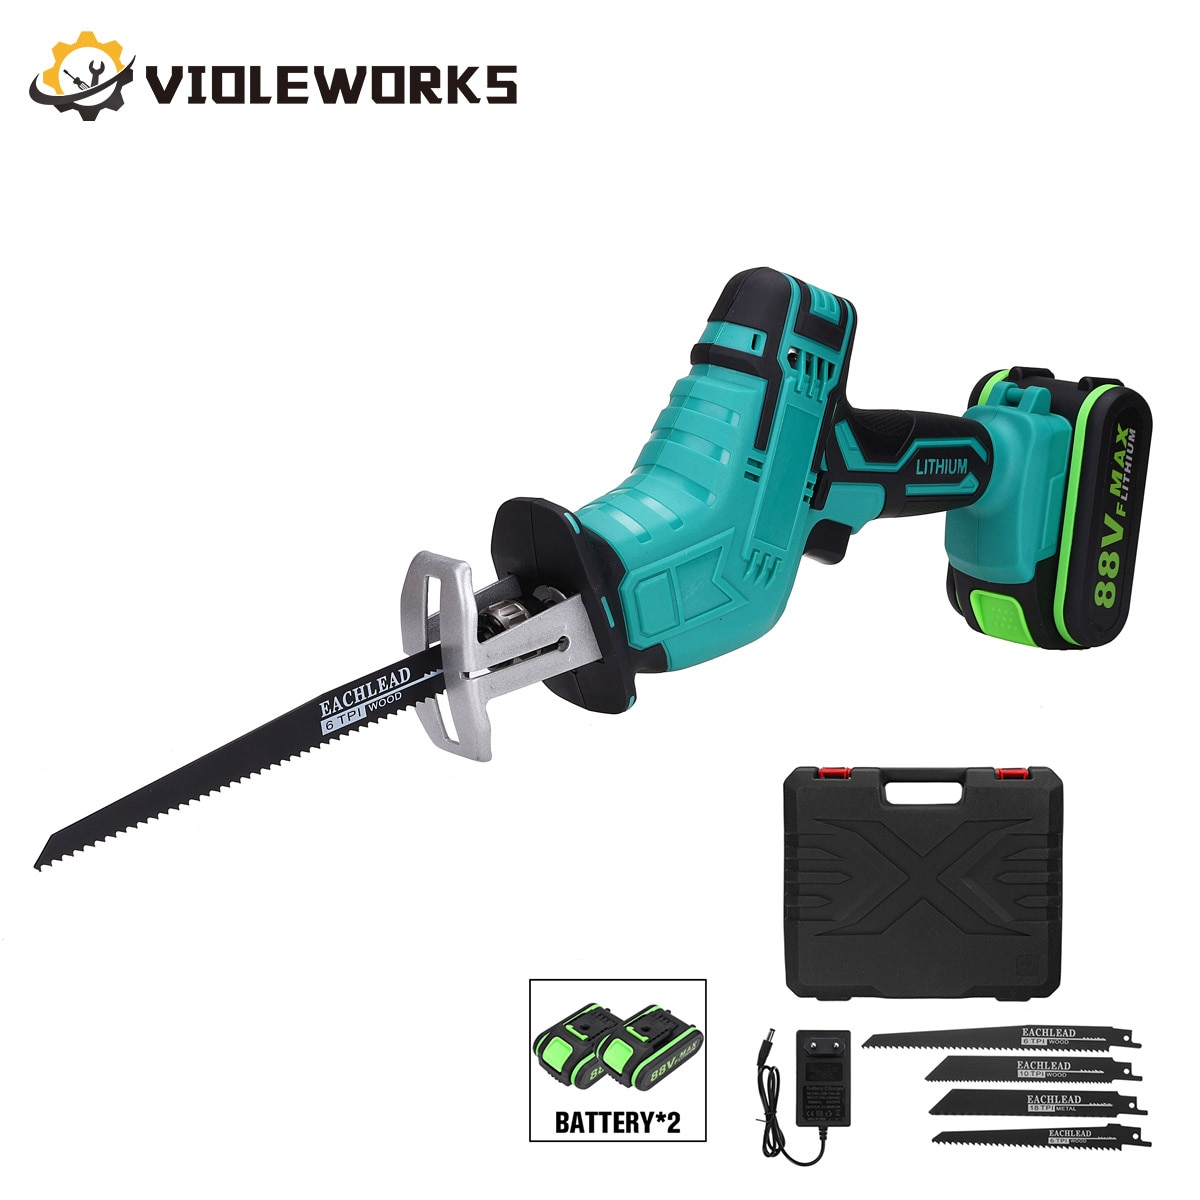 NEW 88V Cordless Reciprocating Saw Handsaw Saber Multifunction for Metal Wood Pipe Cutting with 4 Blades Kit